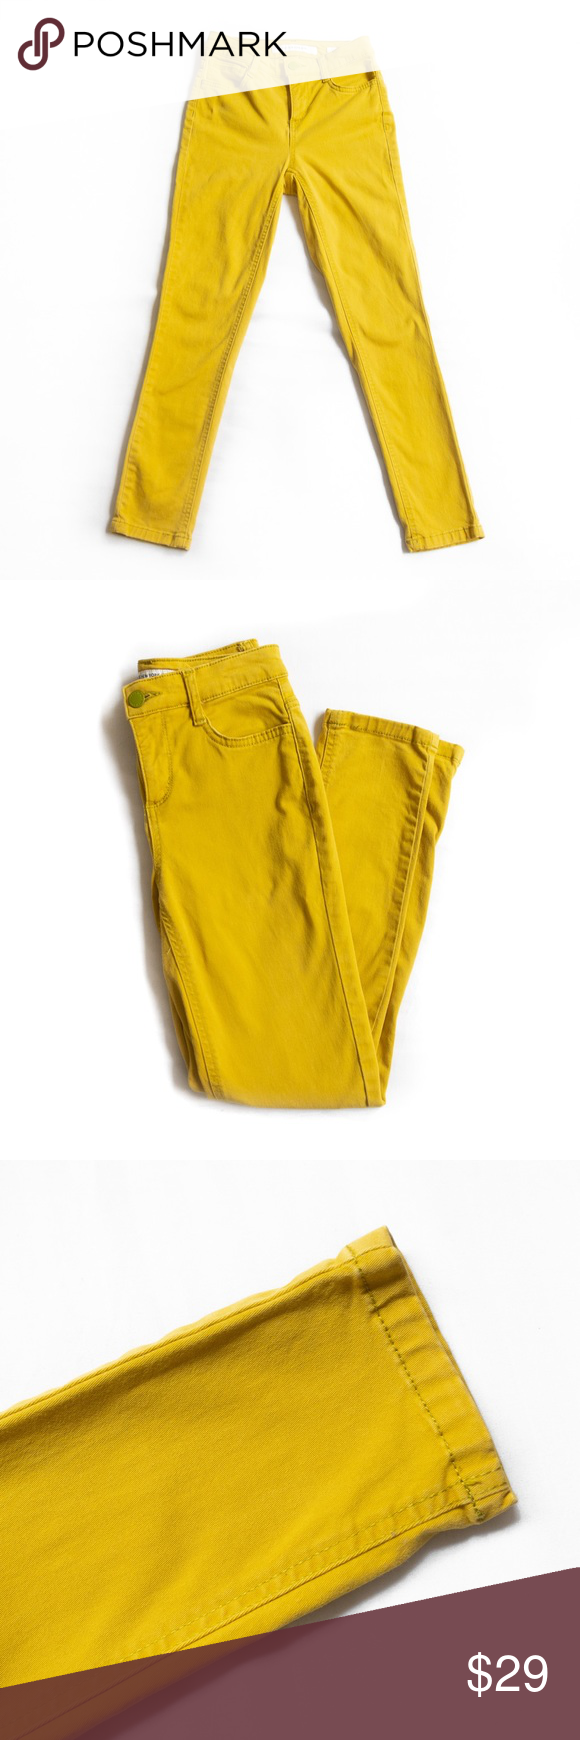 Jones New York Yellow Green Soho Ankle Skinny Jean Jones New York Skinny Jeans Clothes Design